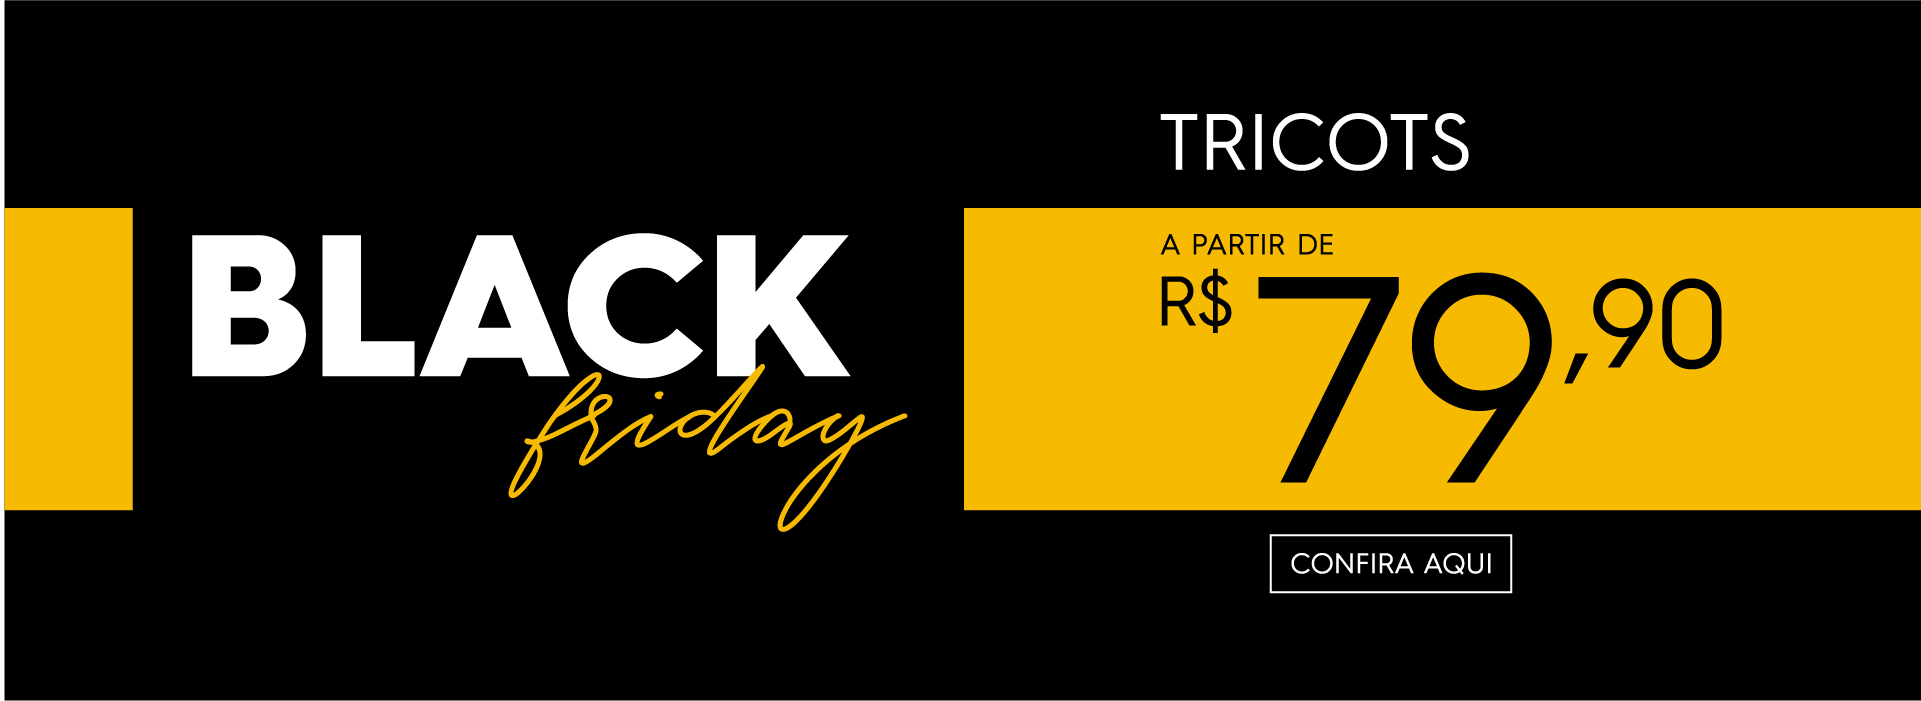 Black Friday | Tricots